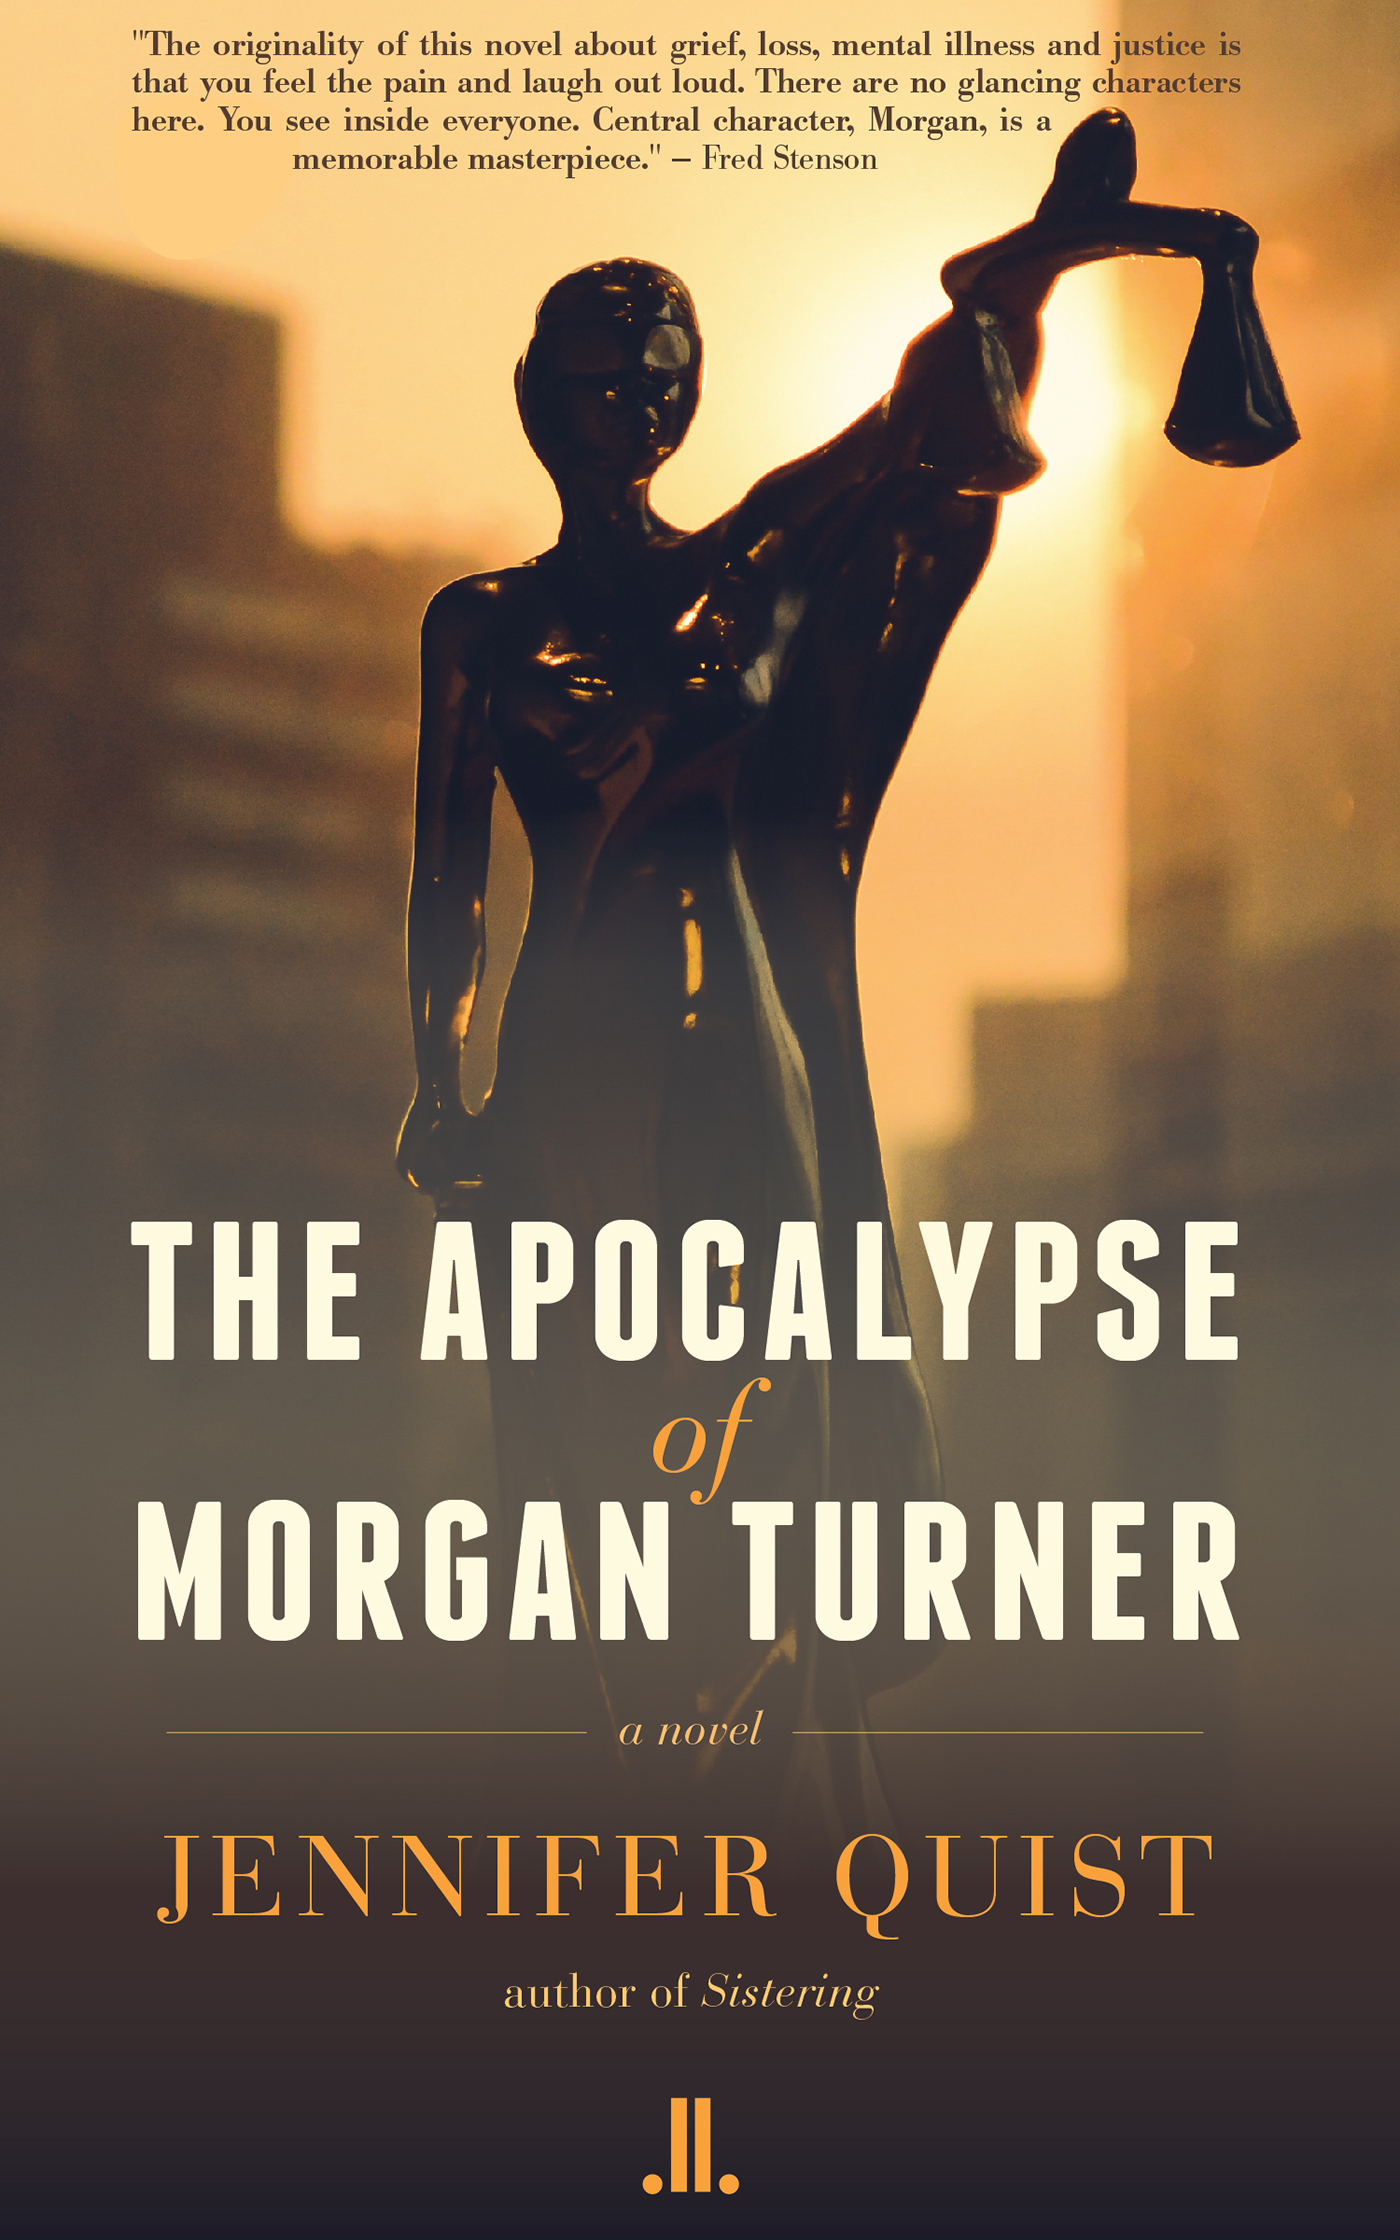 The Apocalypse of Morgan Turner